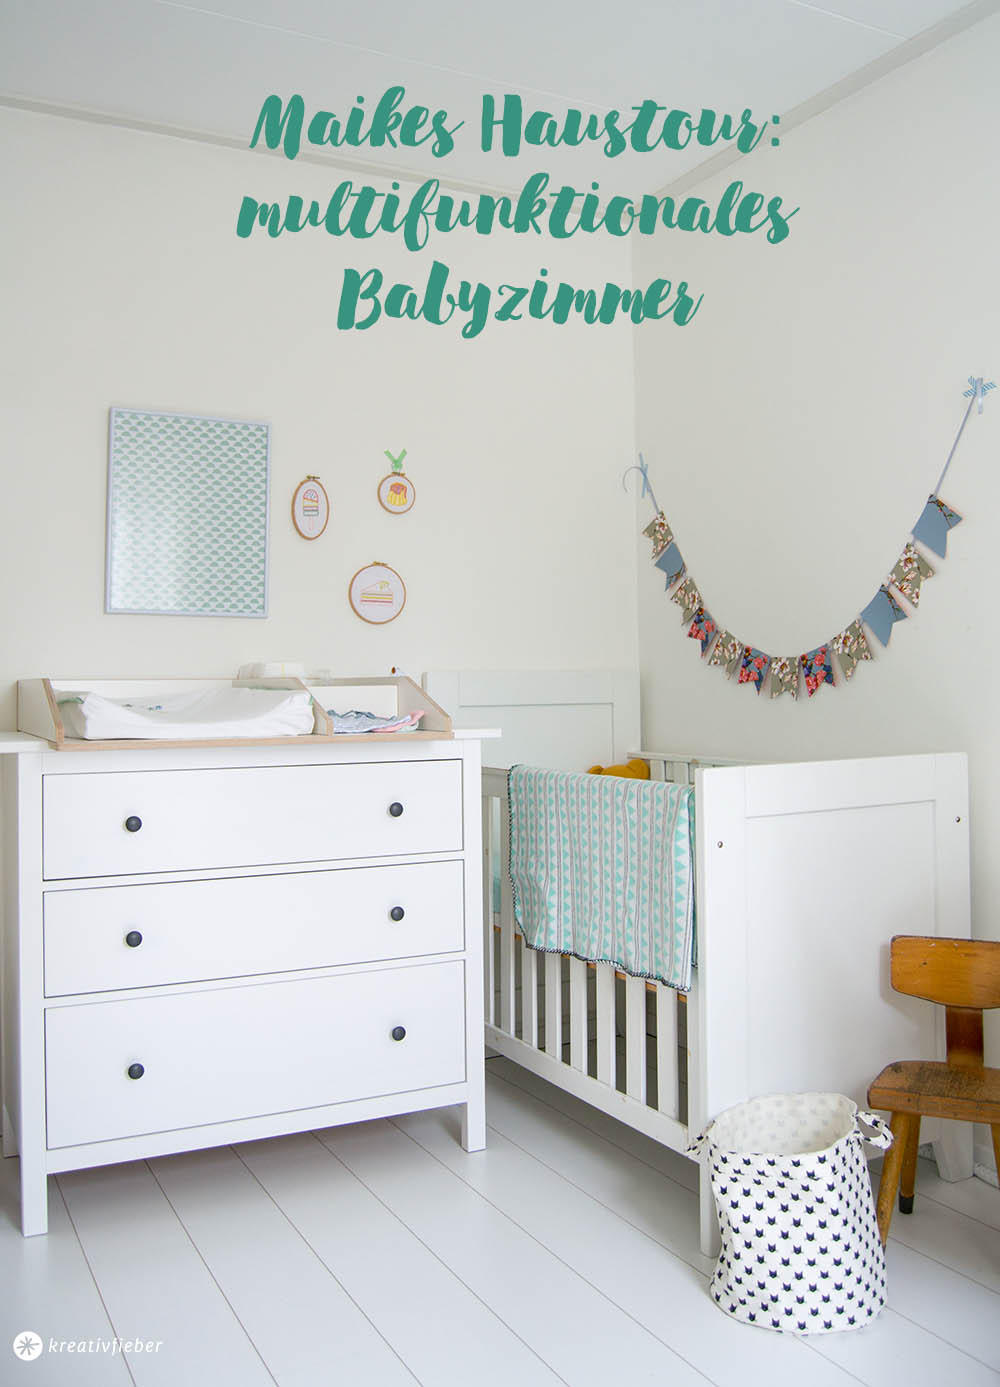 Maikes Haustour Multifunktionales Babyzimmer Einrichten - Babyzimmer Einrichten